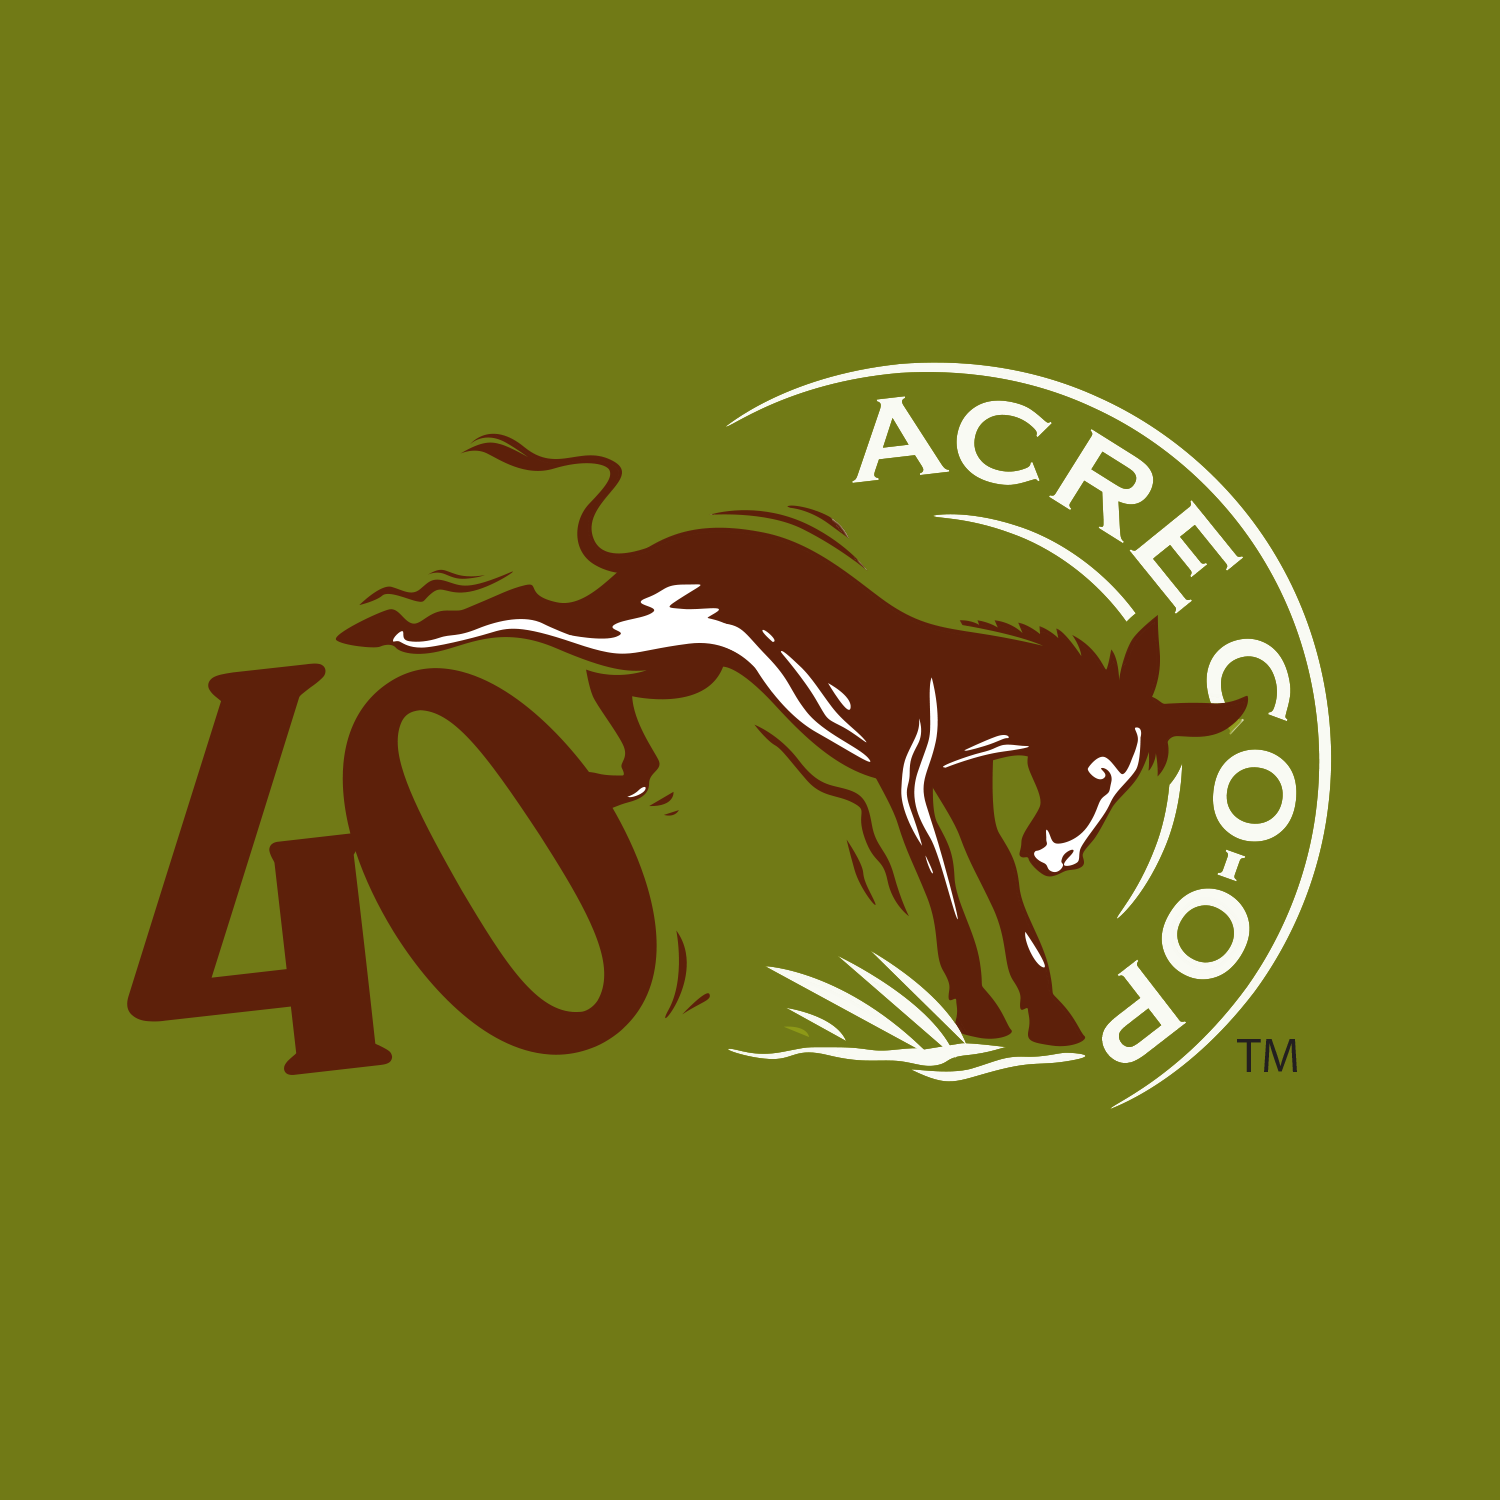 40 Acre Co-op